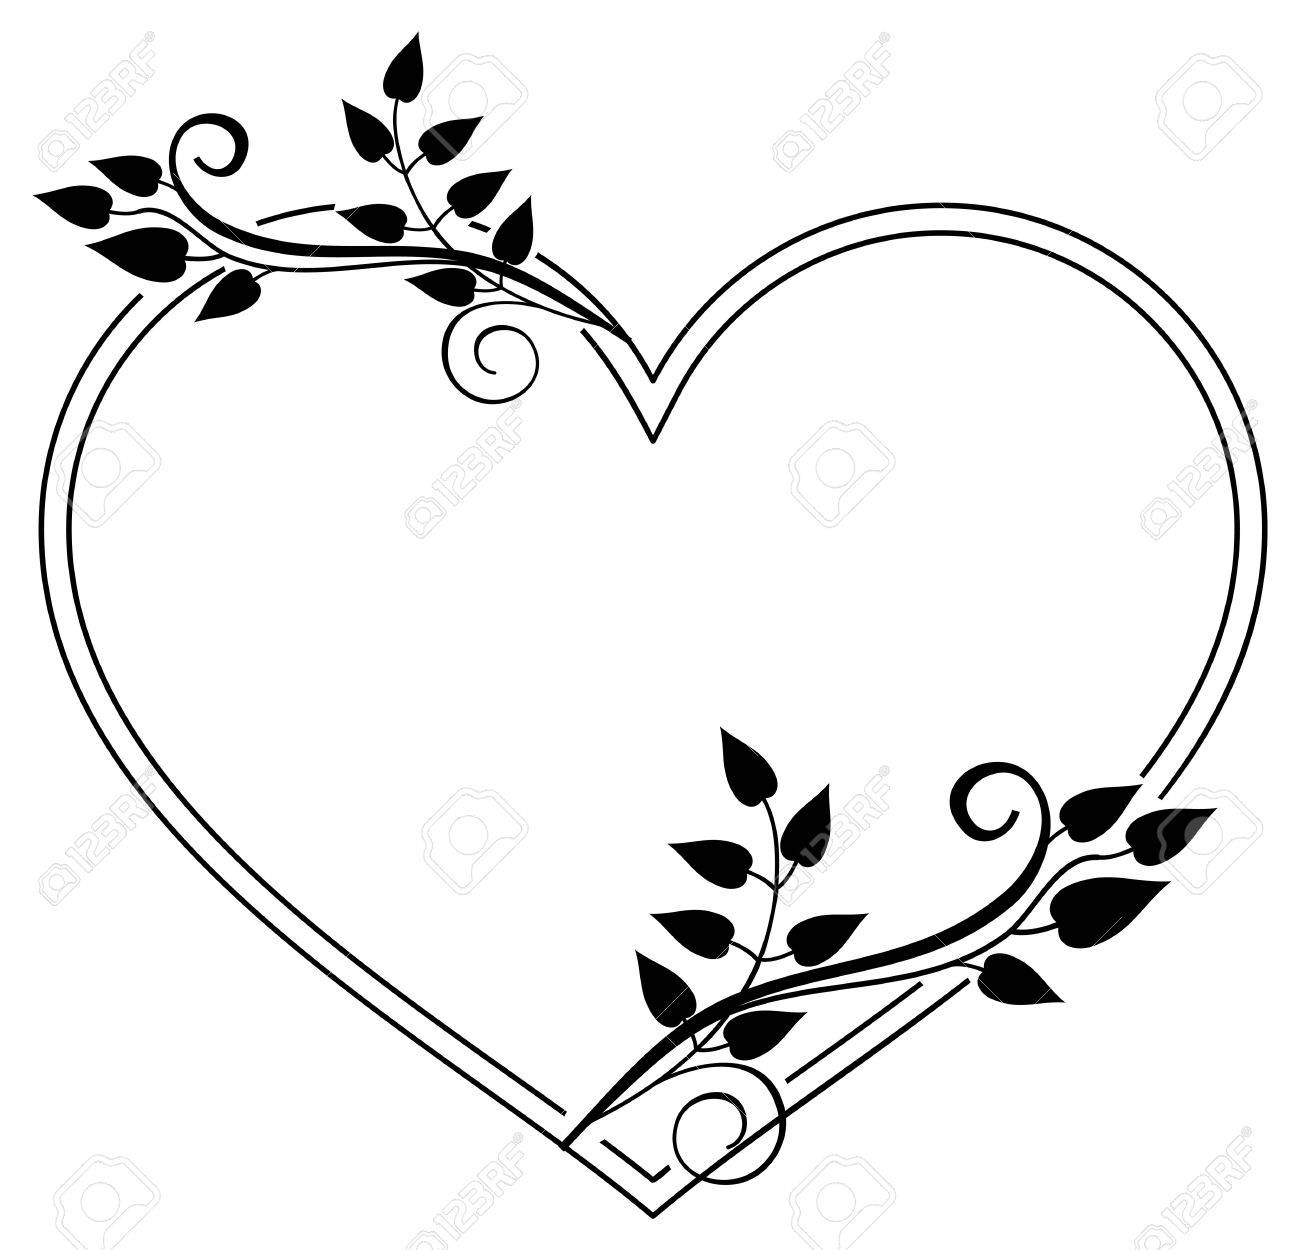 Heart-shaped Black And White Frame With Floral Silhouettes. Copy ...